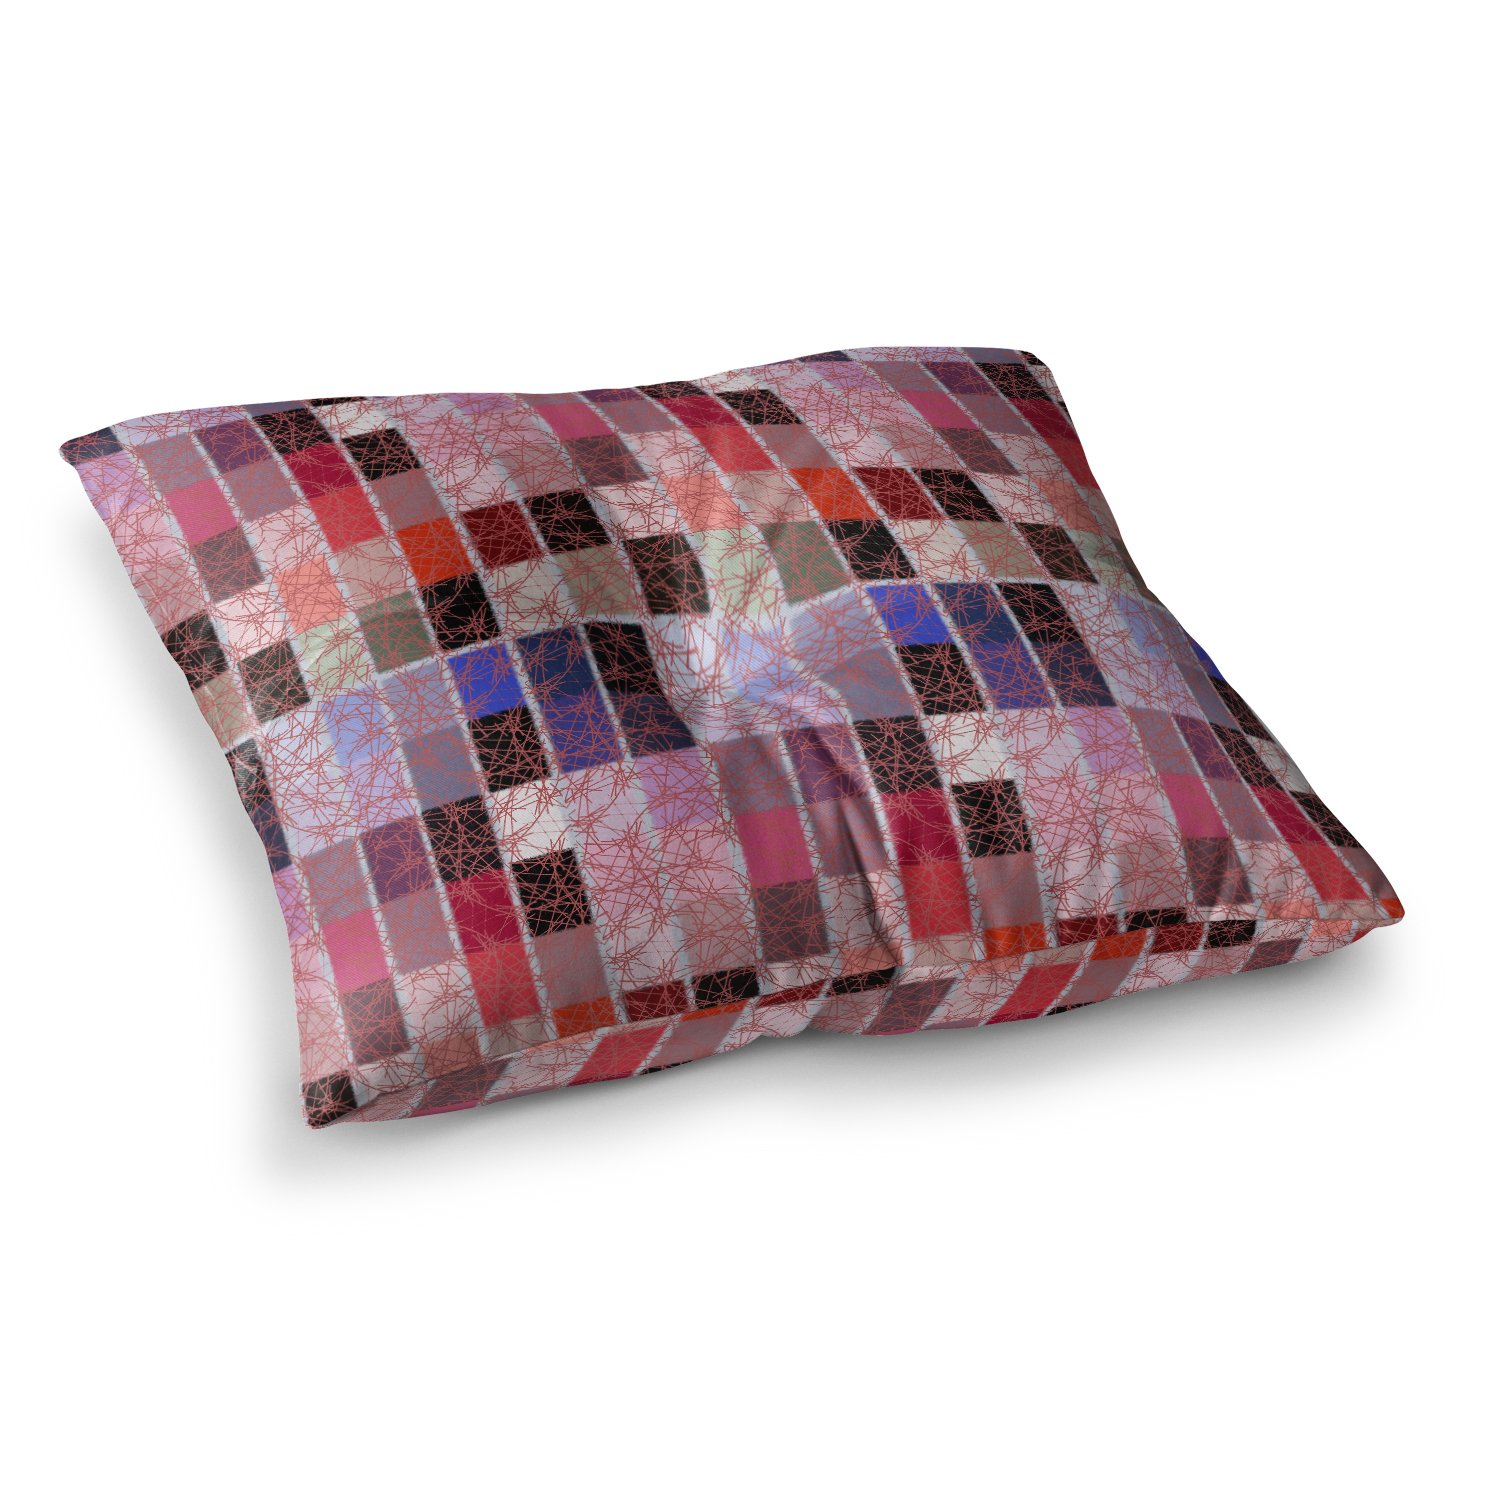 Kess InHouse Laura Nicholson Ruby Tiles Pink Red 23 x 23 Square Floor Pillow